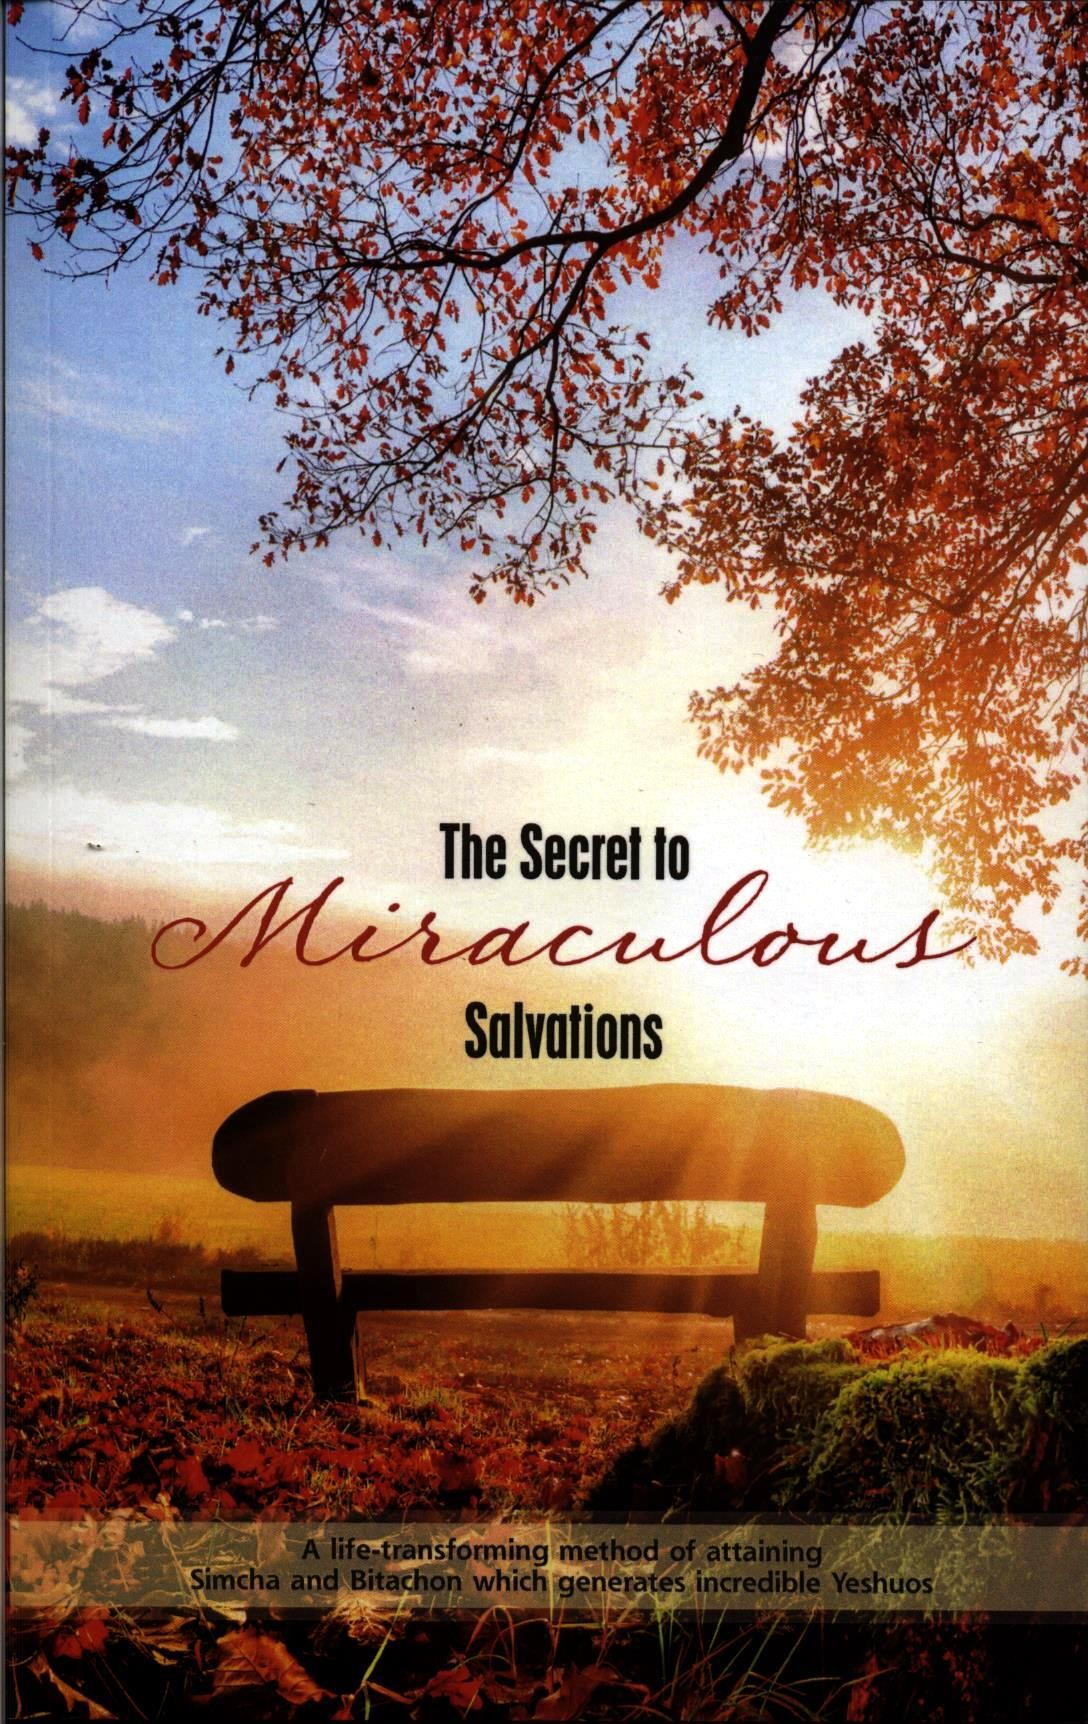 The Secret to Miraculos Salvations